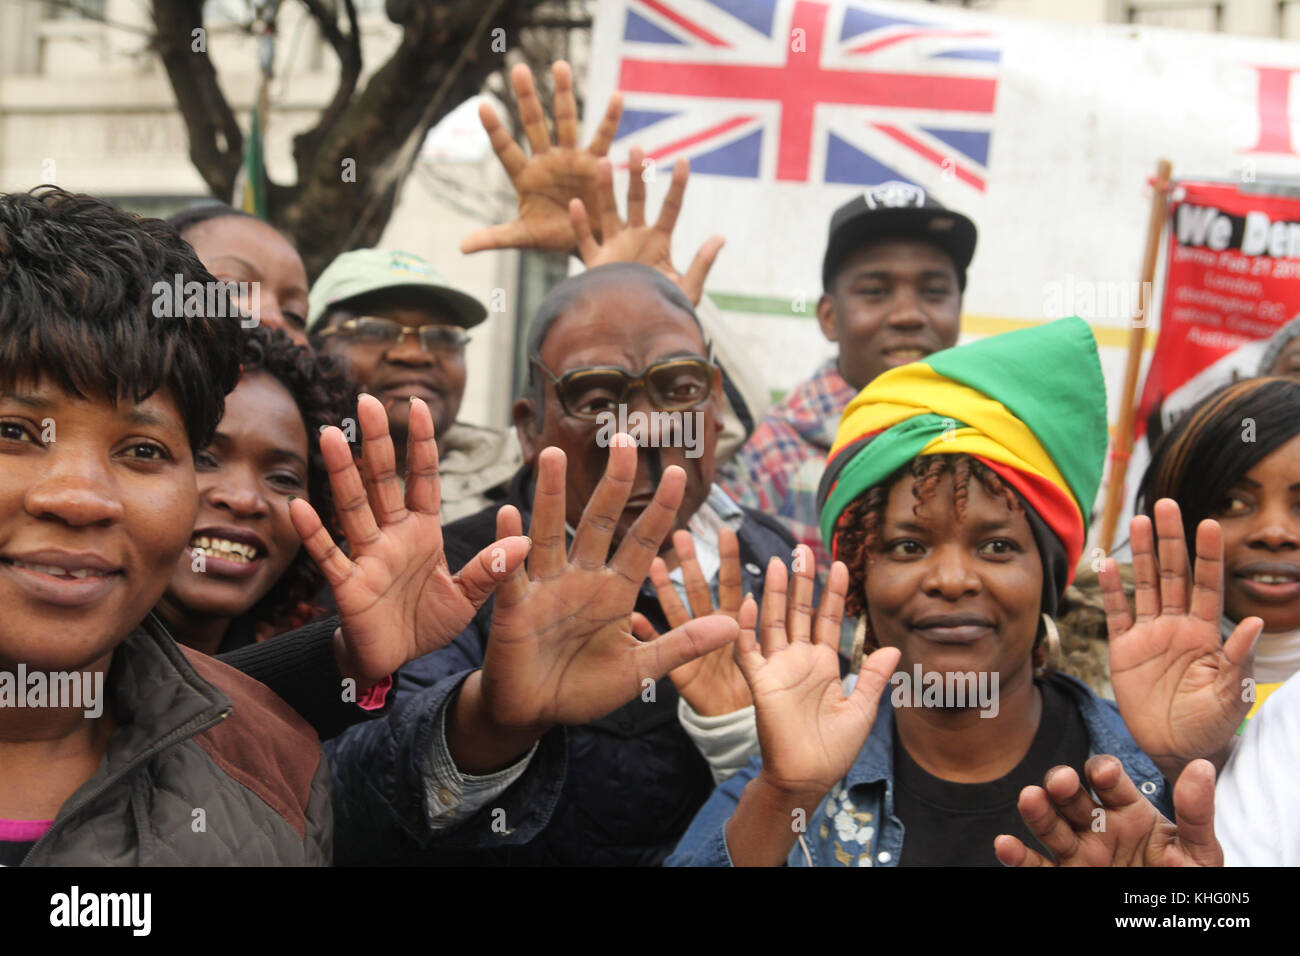 London, UK. 21 February 2015: A protestor with a Mugabe mask takes part in a demonstration outside Zimbabwe House - Stock Image